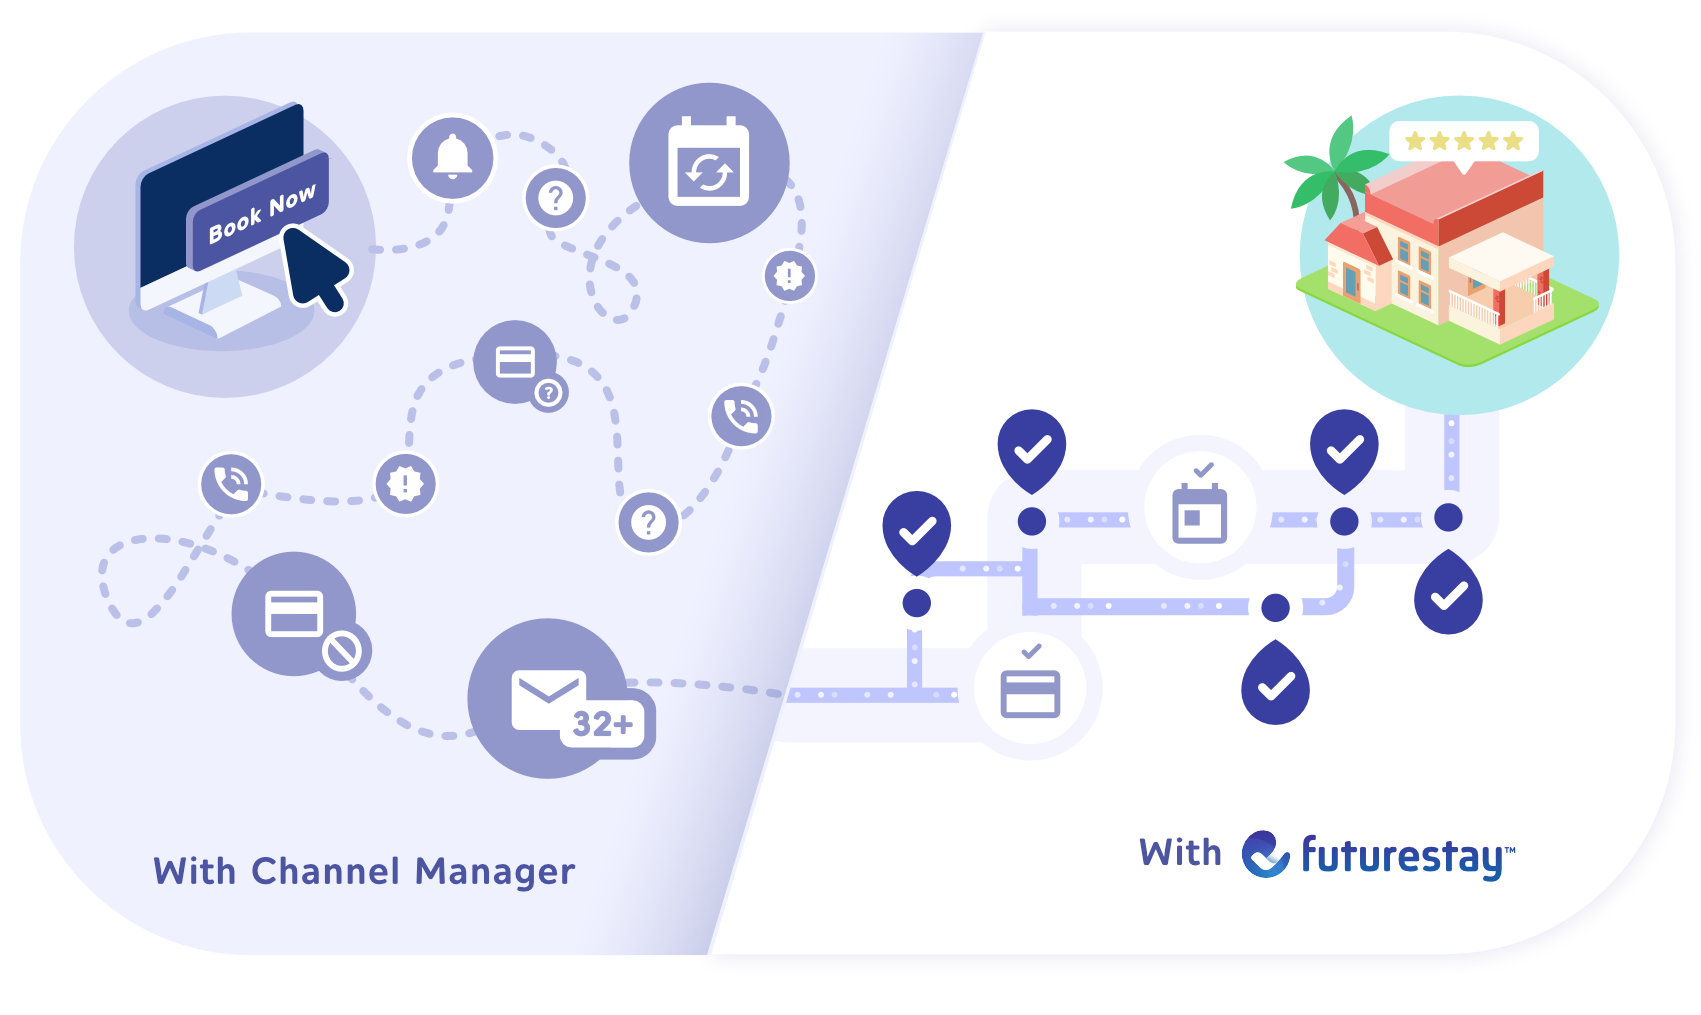 The difference between manually managing a vacation rental or automatically with Futurestay